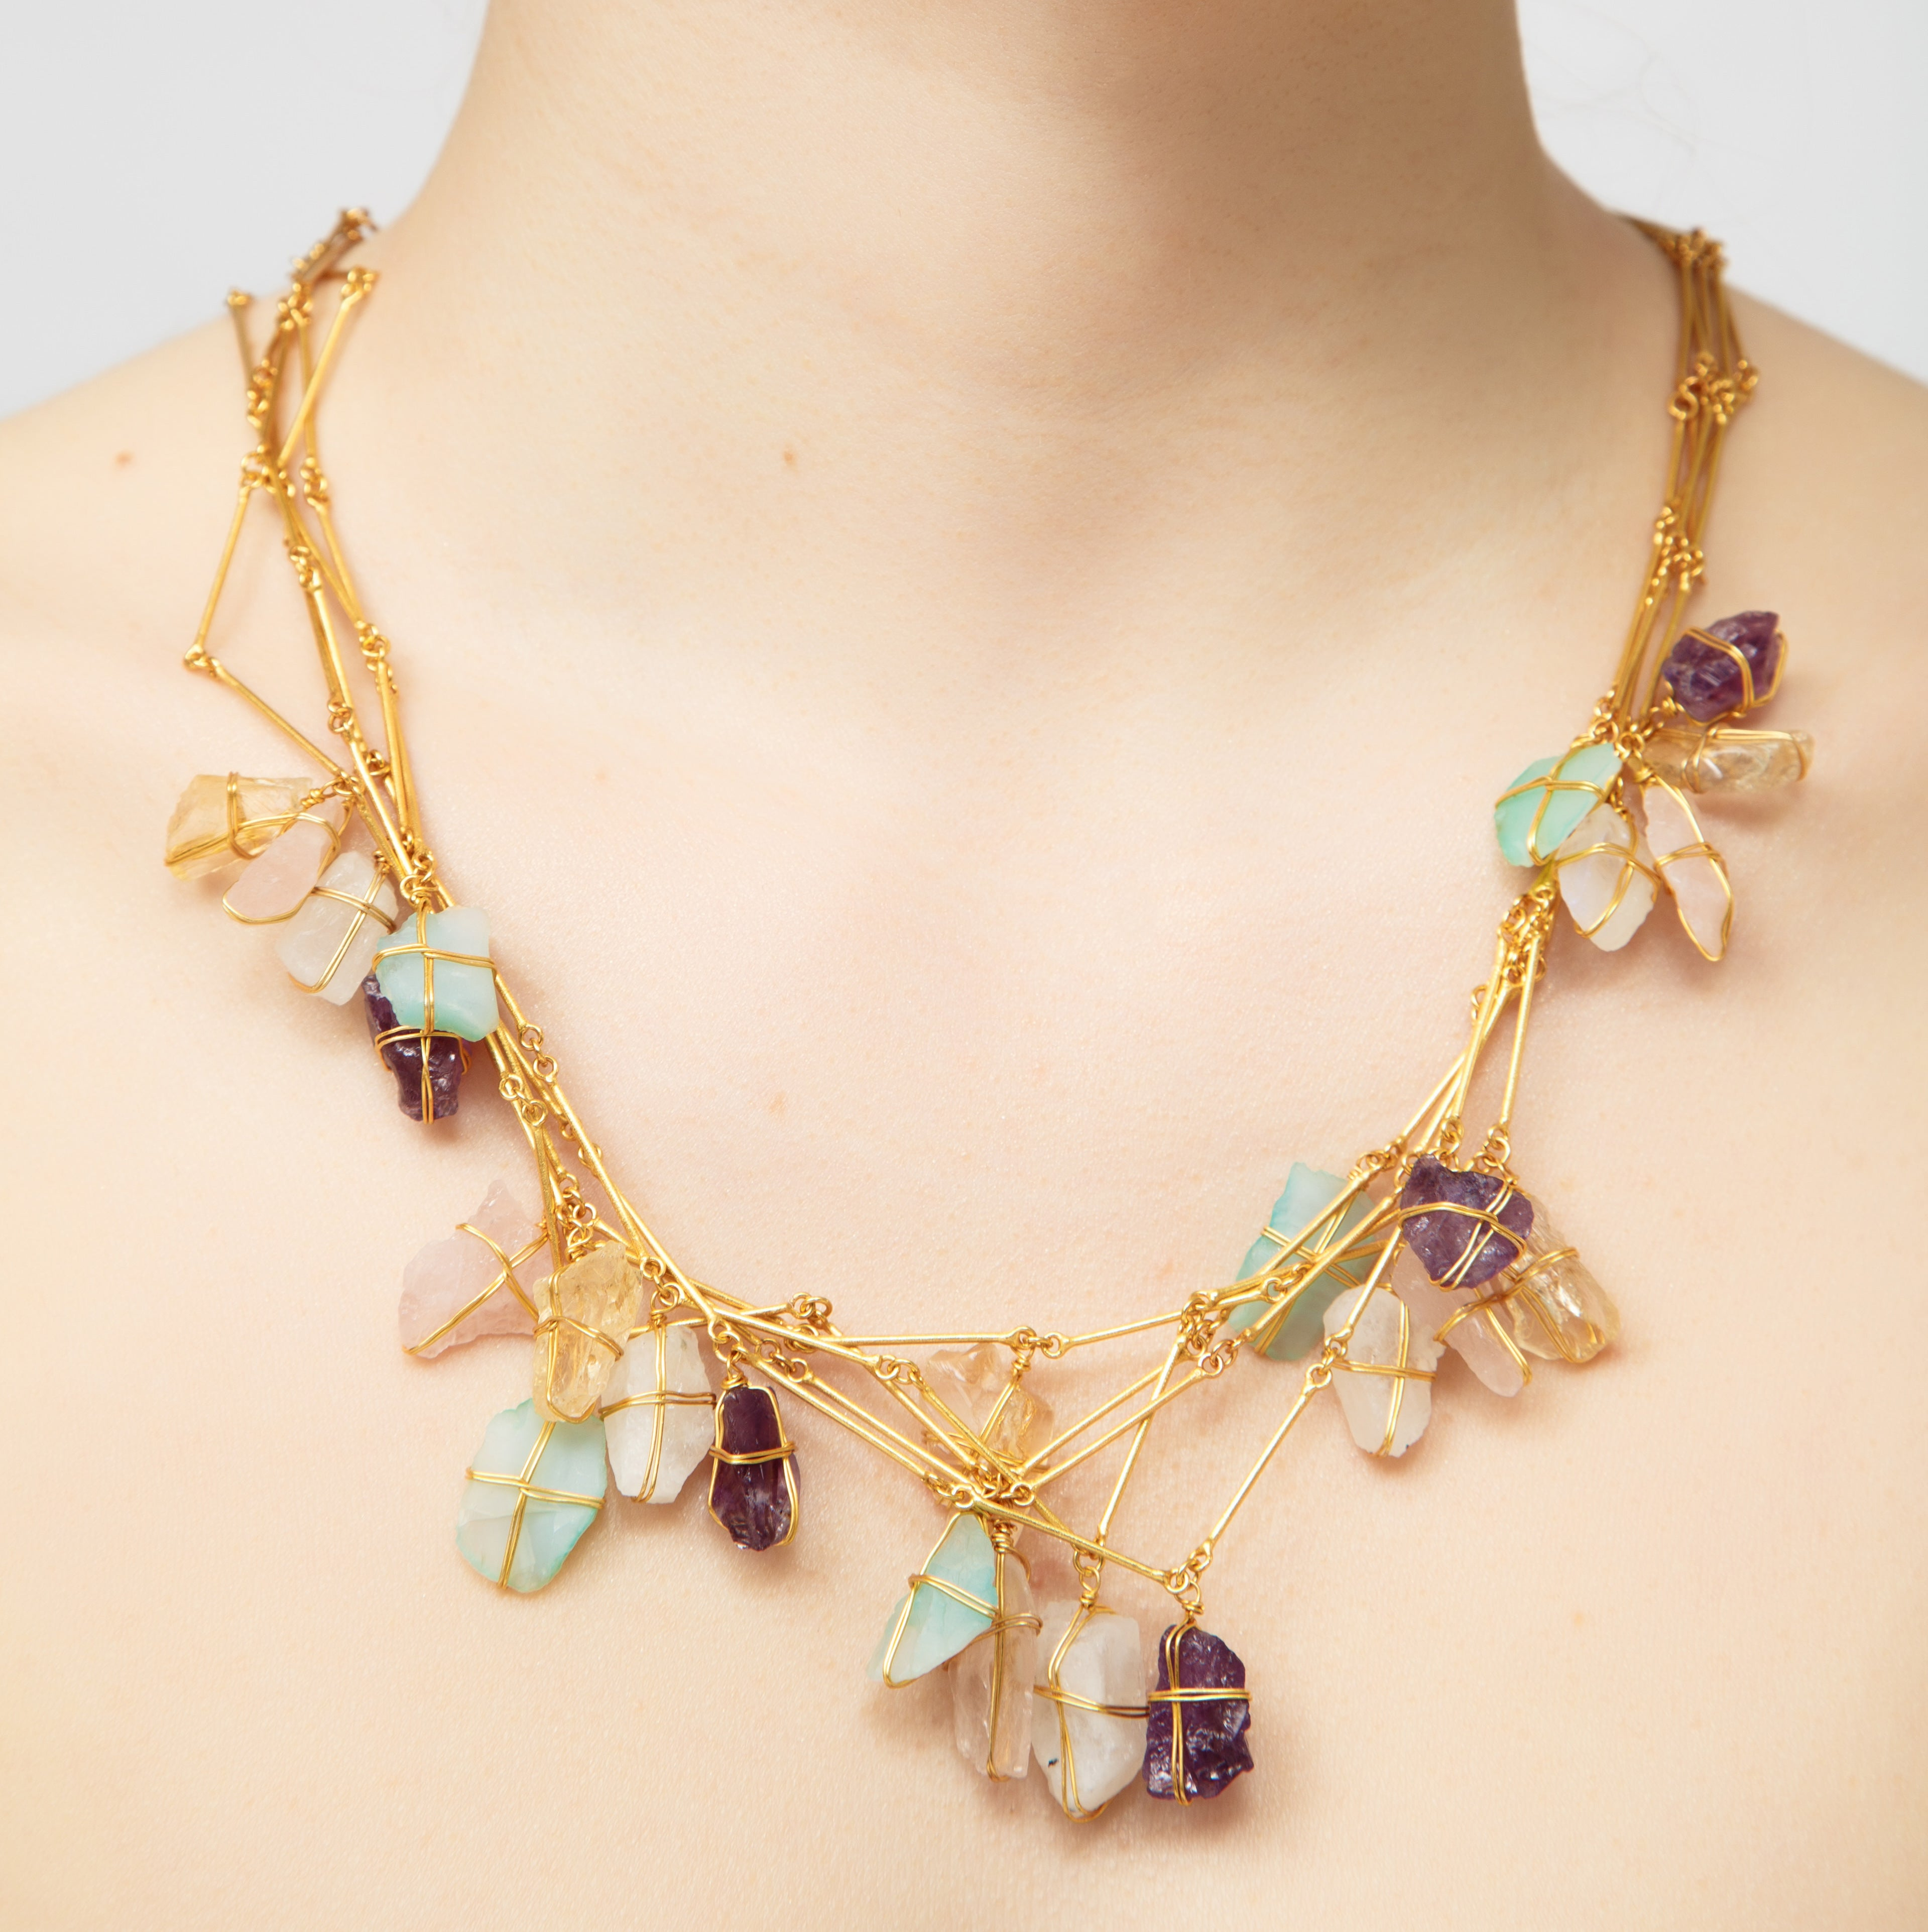 Dinari Jewels Greek Goddess Gold Necklace Braced with Natural Semi-Precious (Aquamarine, Purple Amethyst, Rose Quartz, Yellow Agate, White Quartz) Celebrity Style Trends dinari jewels handmade purple natural amethyst gemstone in 18k gold earring celebrity trend style cannes london paris new york fashion week jewelry jewellery